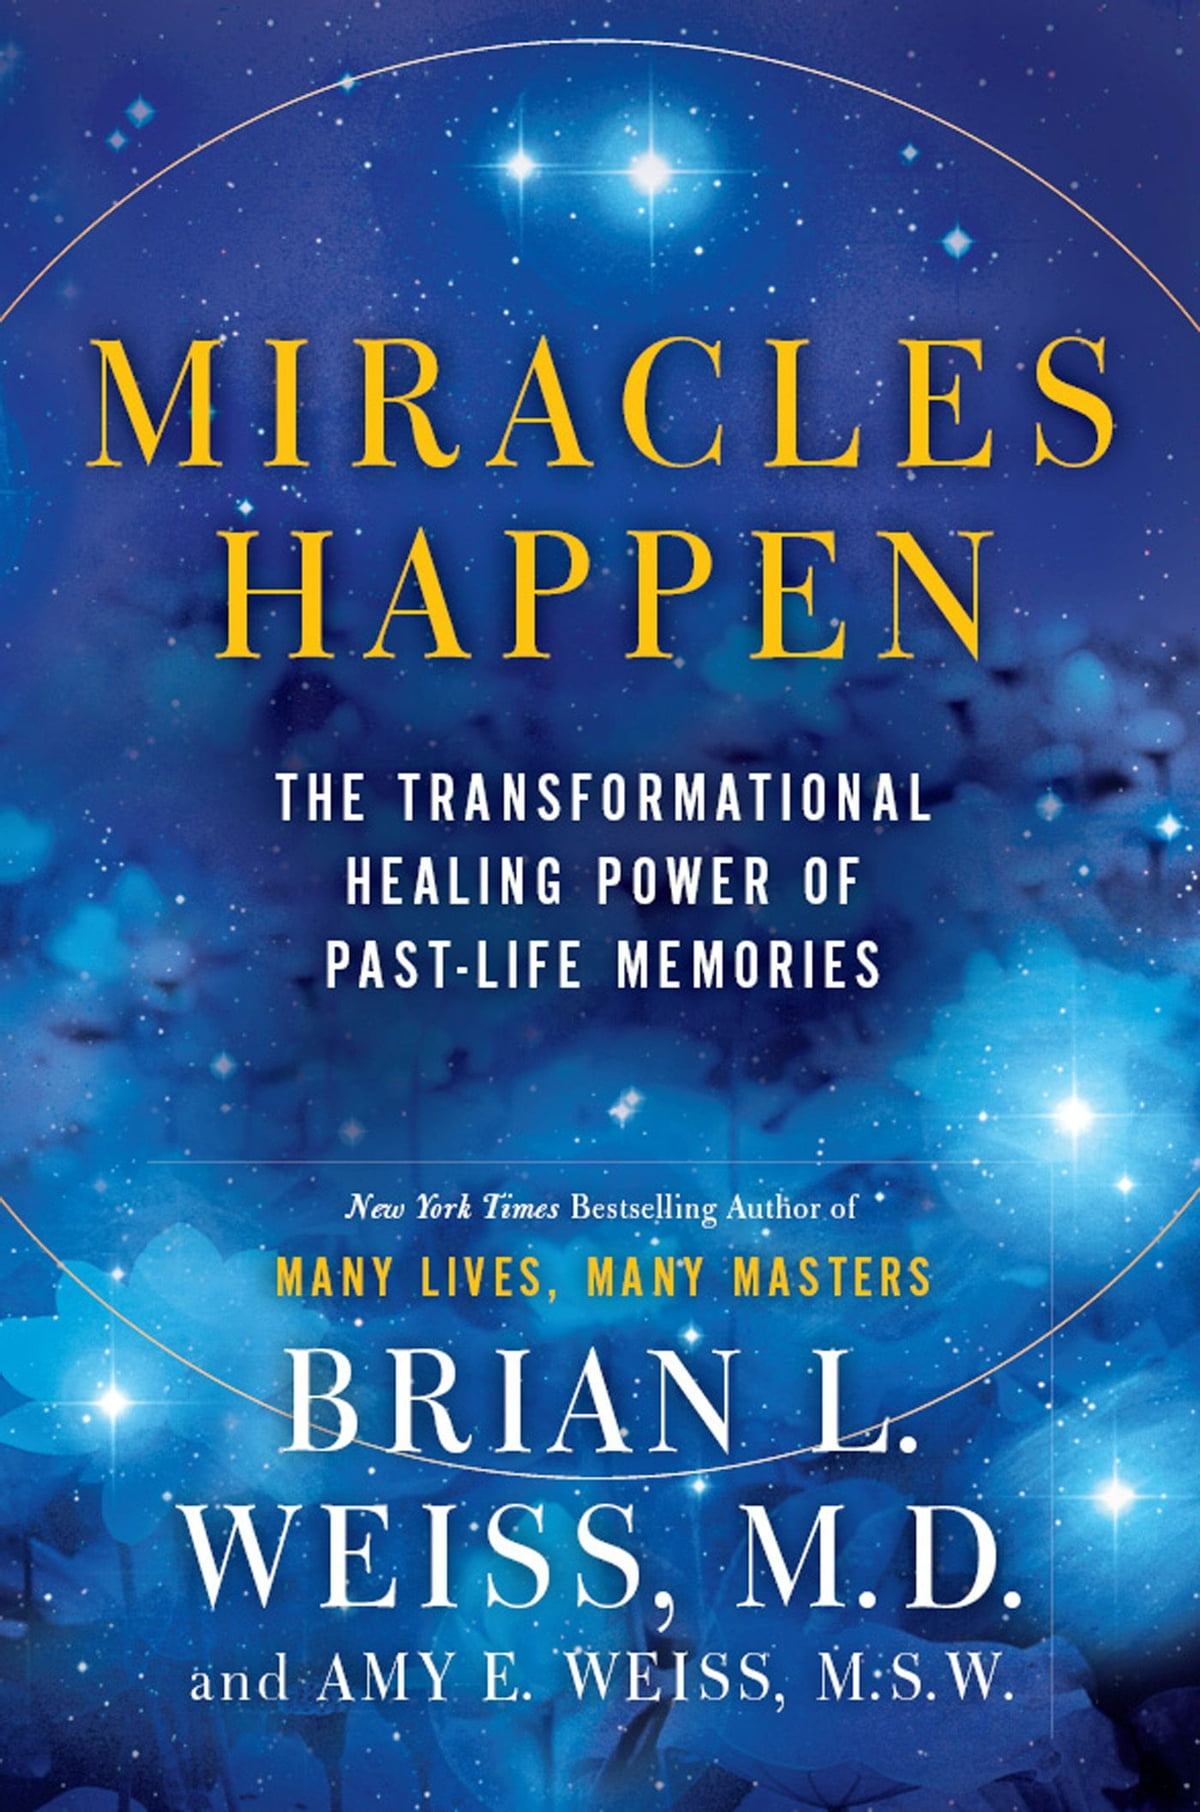 Miracles Happen  The Transformational Healing Power Of Pastlife Memories  Ebook By Brian L